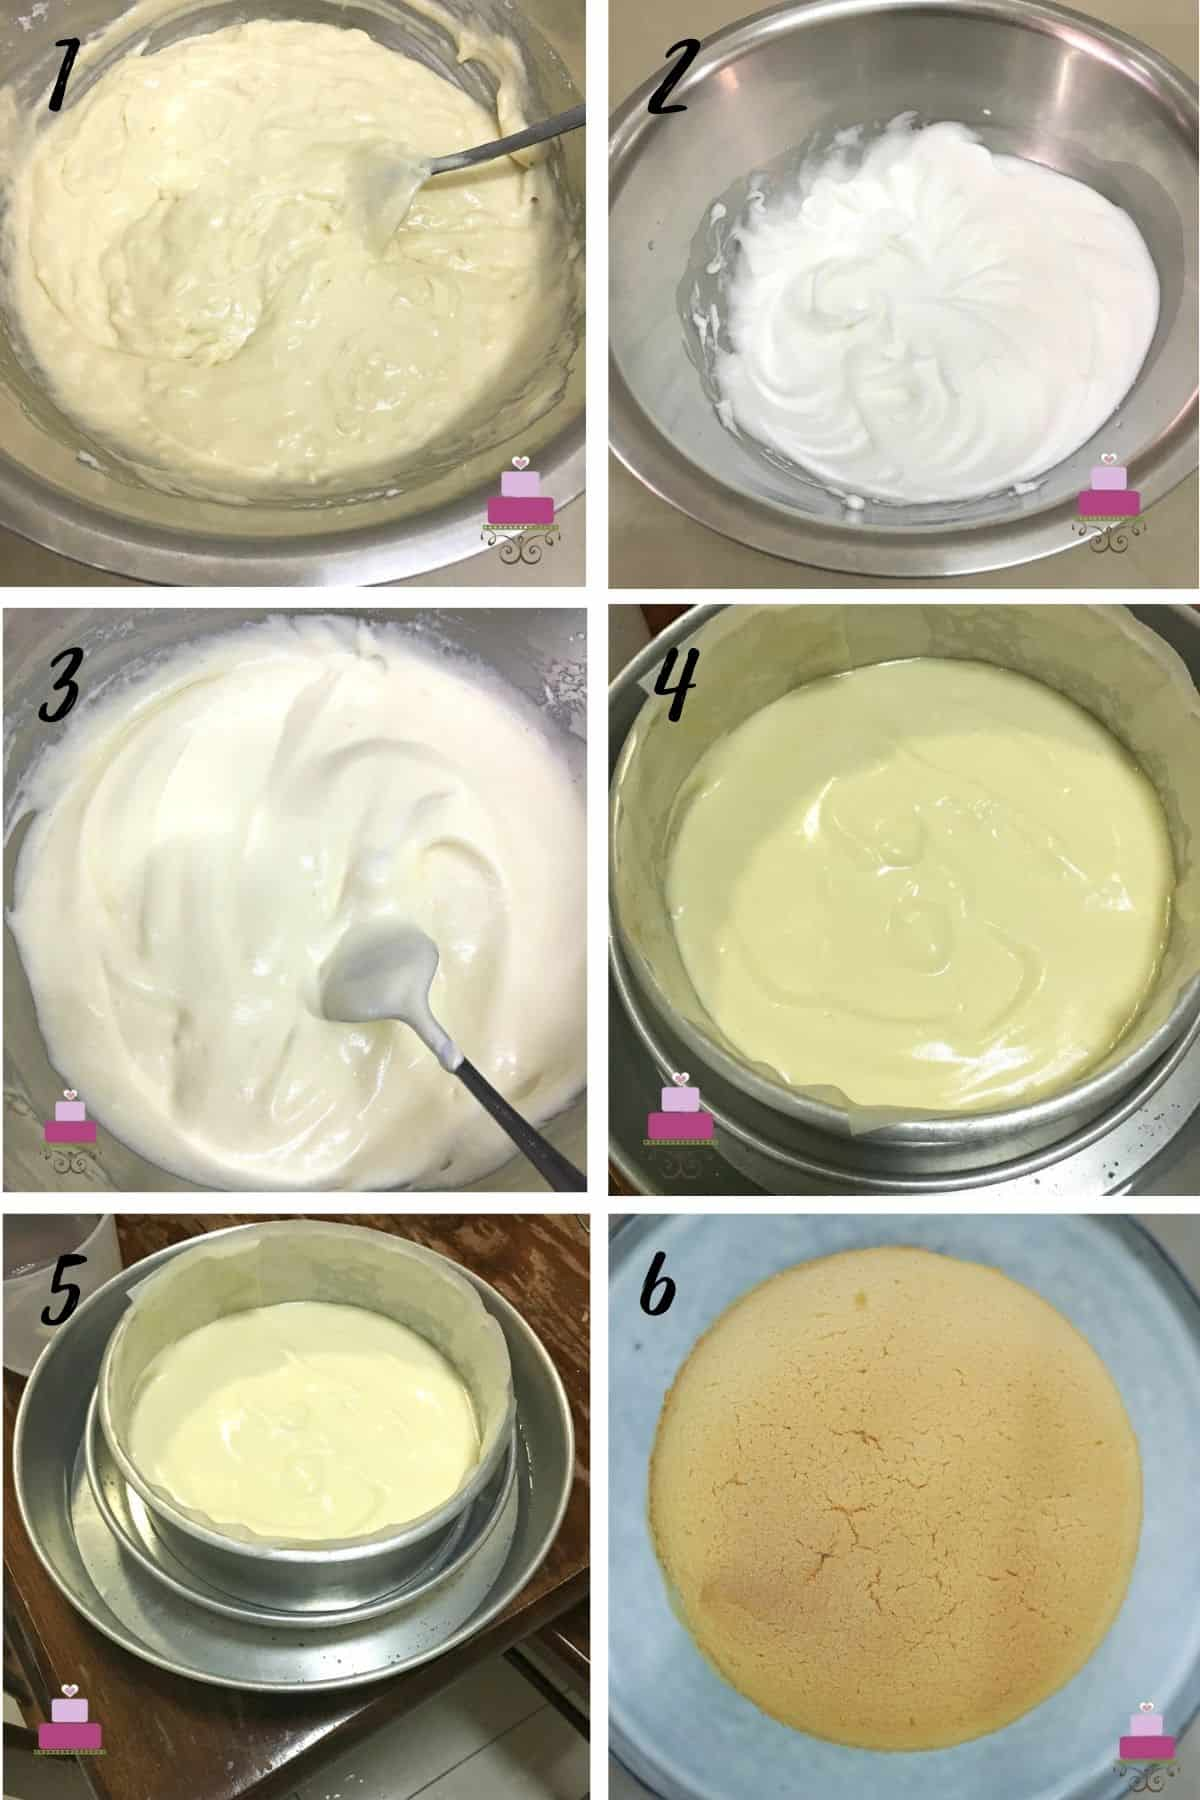 A poster of 6 images showing how to mix a Japanese cotton cake batter